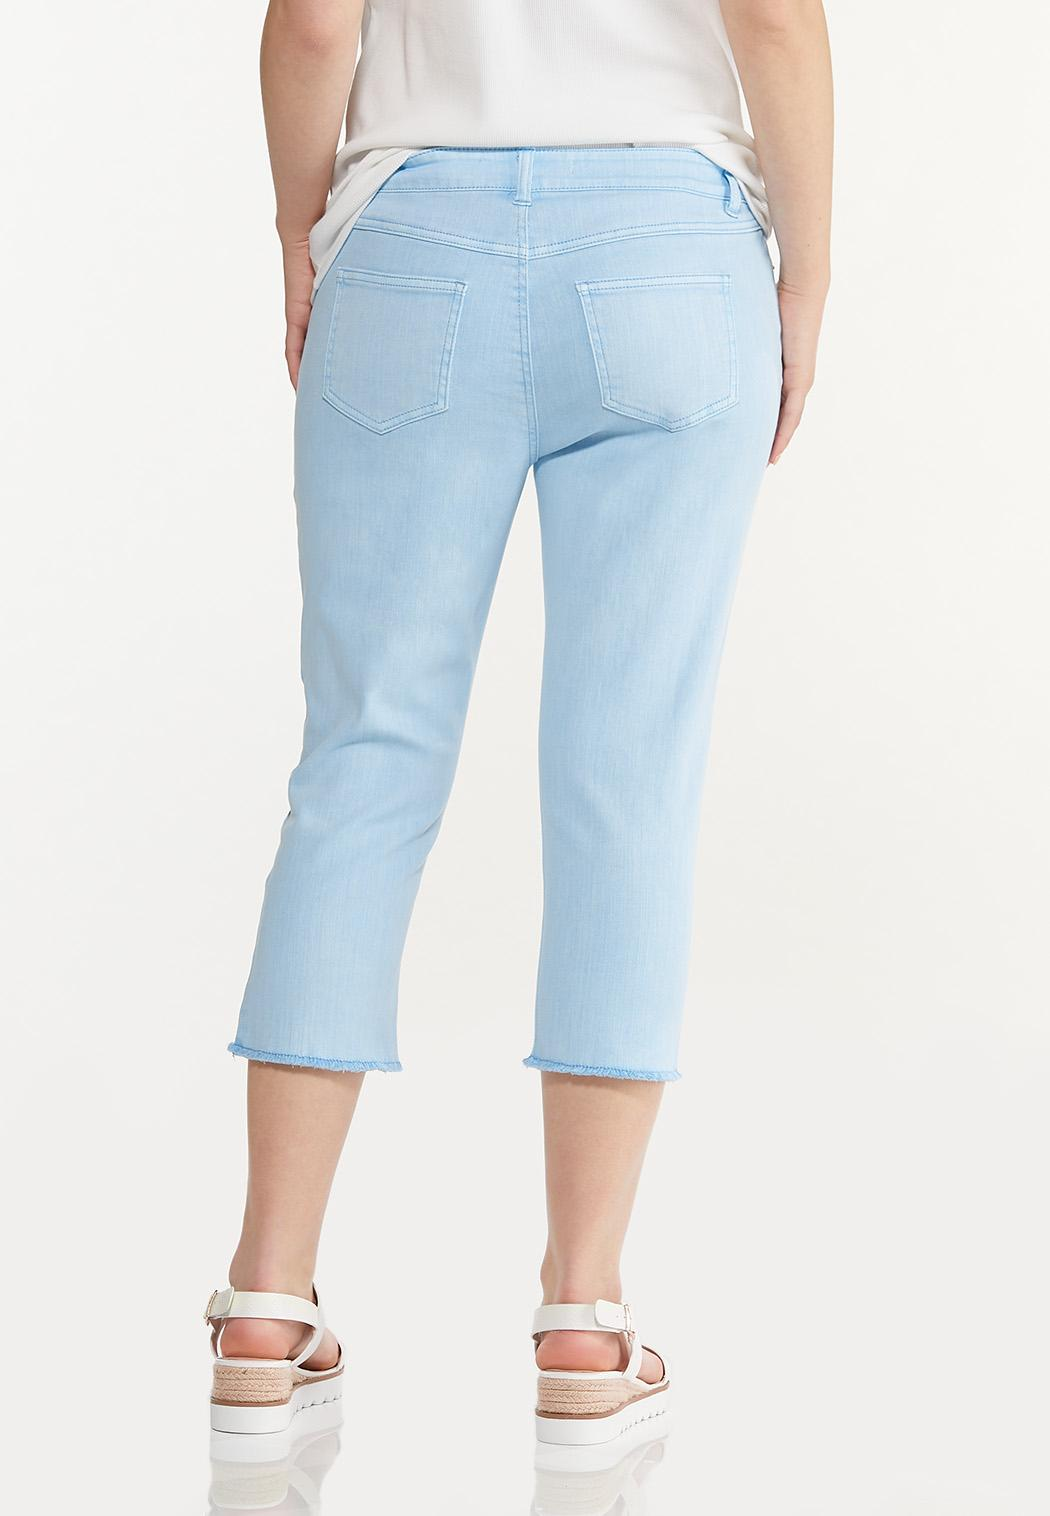 Curvy Frayed Cropped Jeans (Item #44575735)